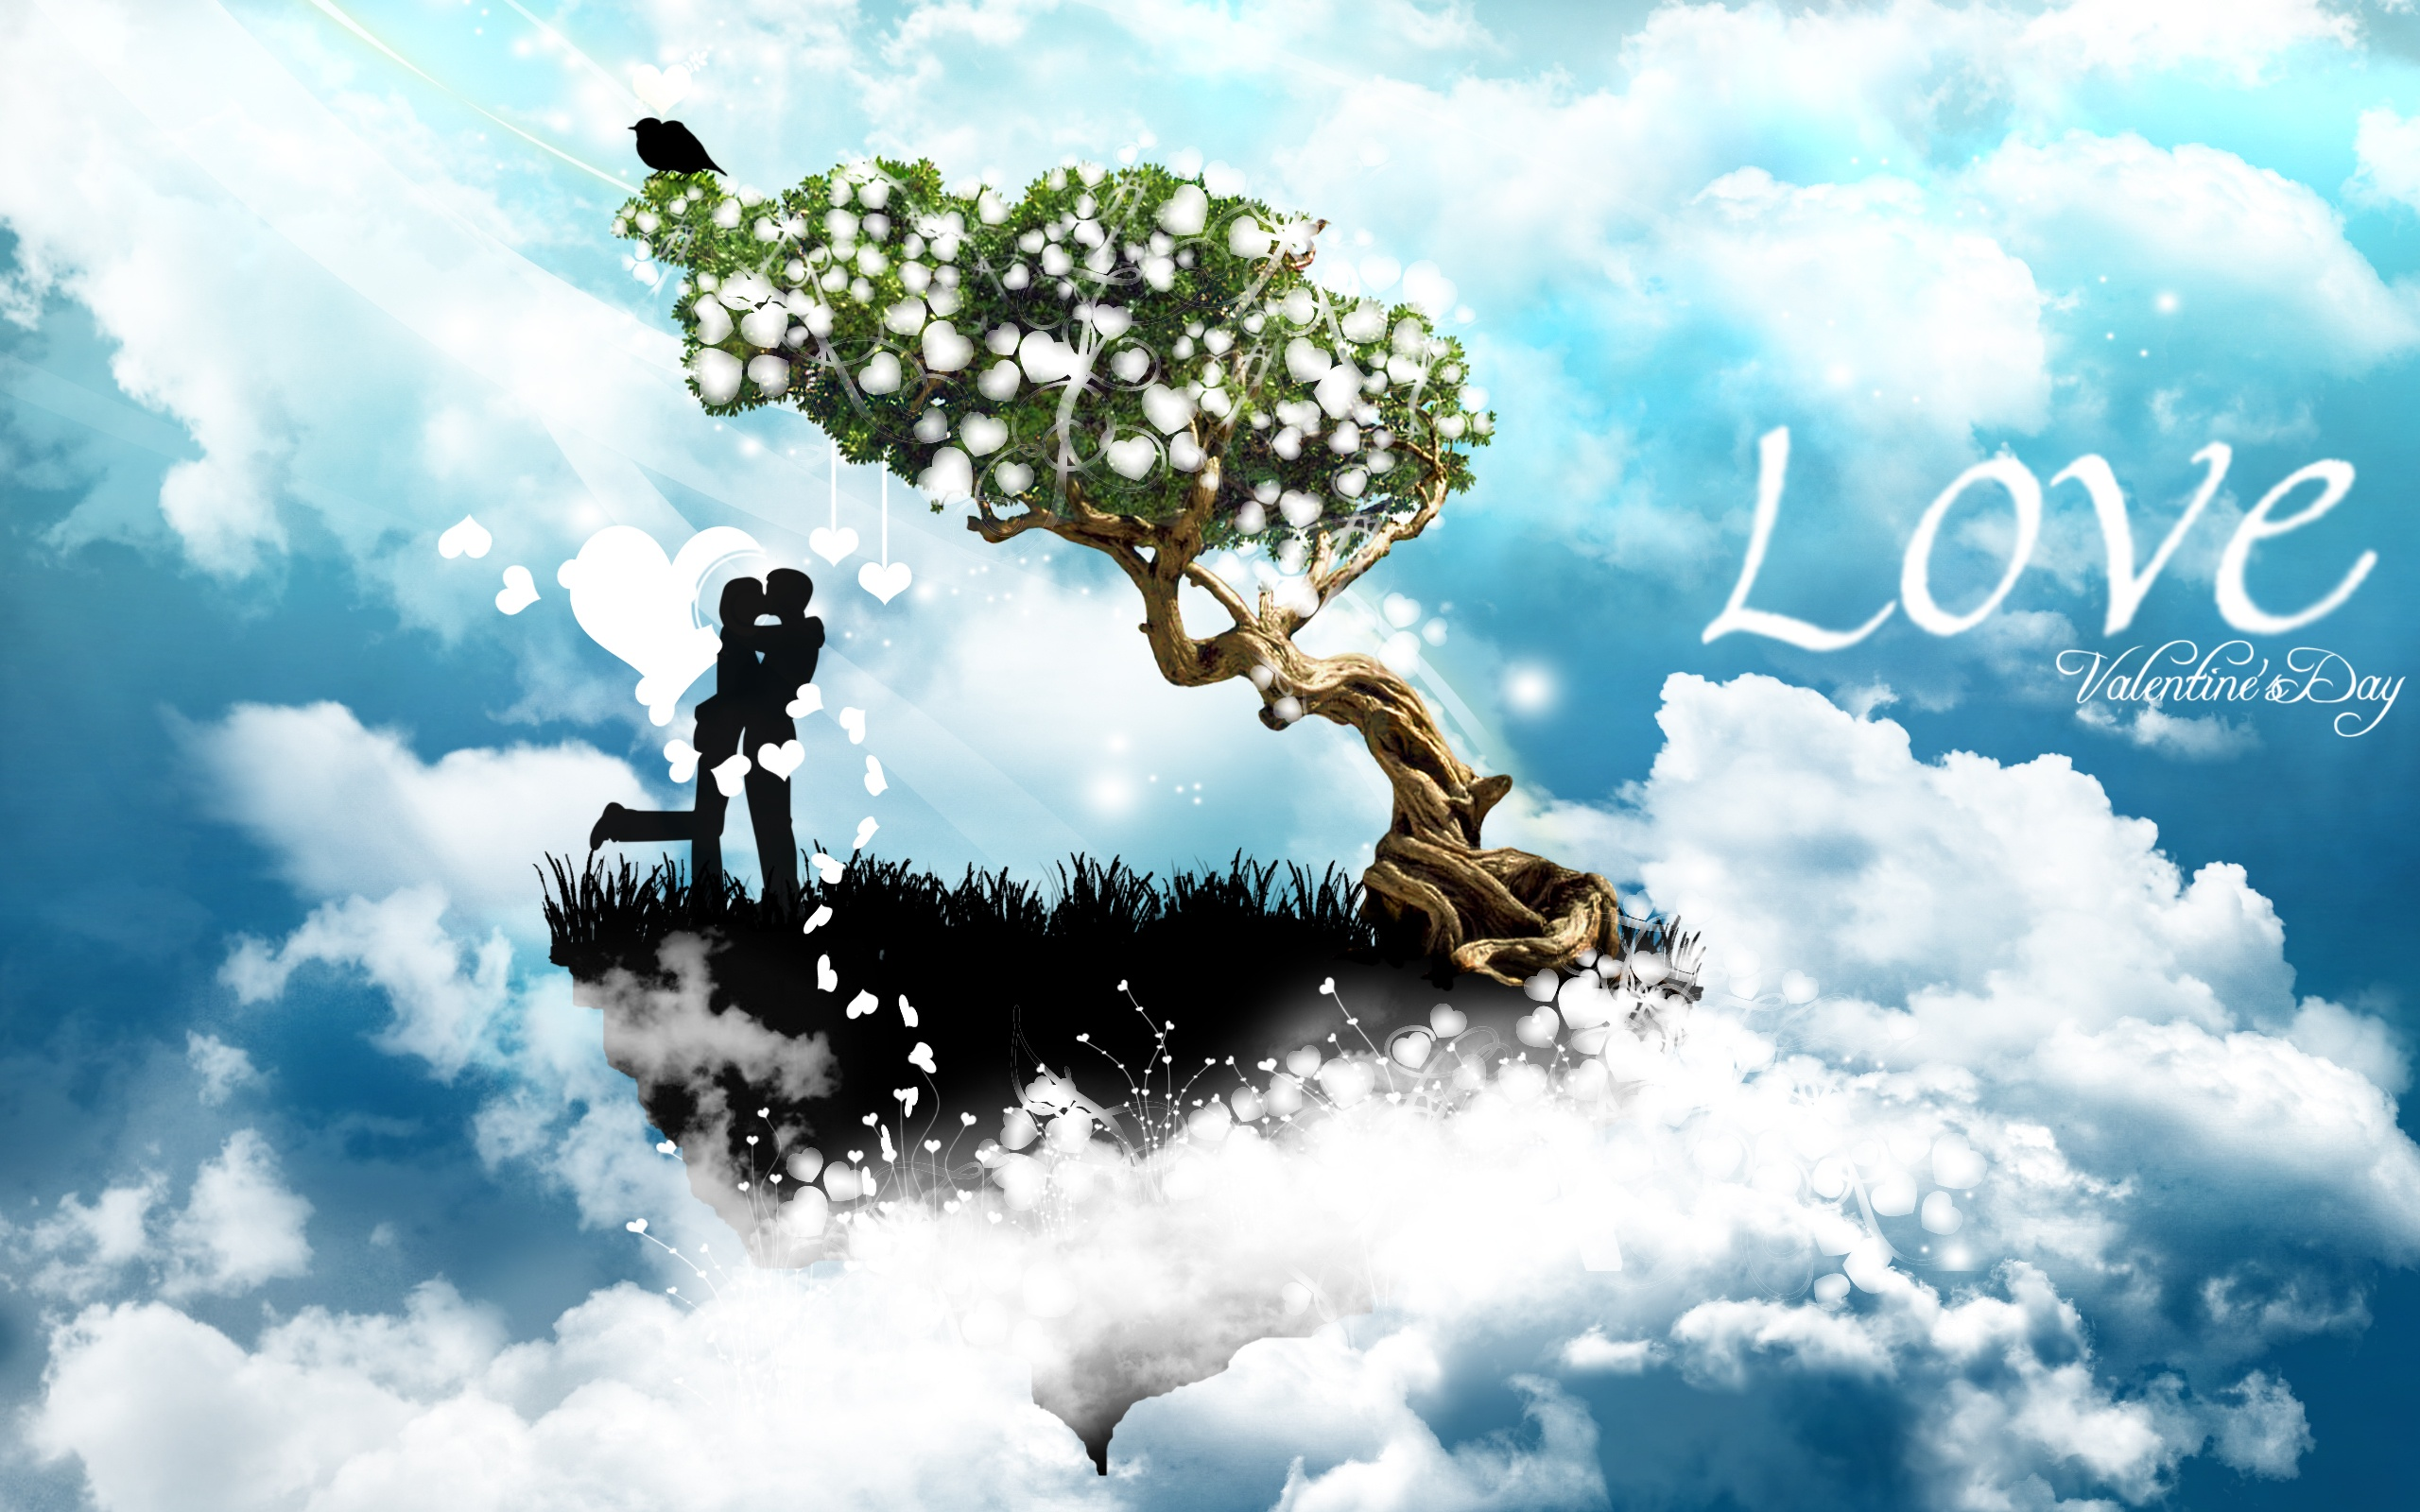 Love Wallpapers 2560x1600 : Tree Of Love By Wallpapers - 2560x1600 - 966037